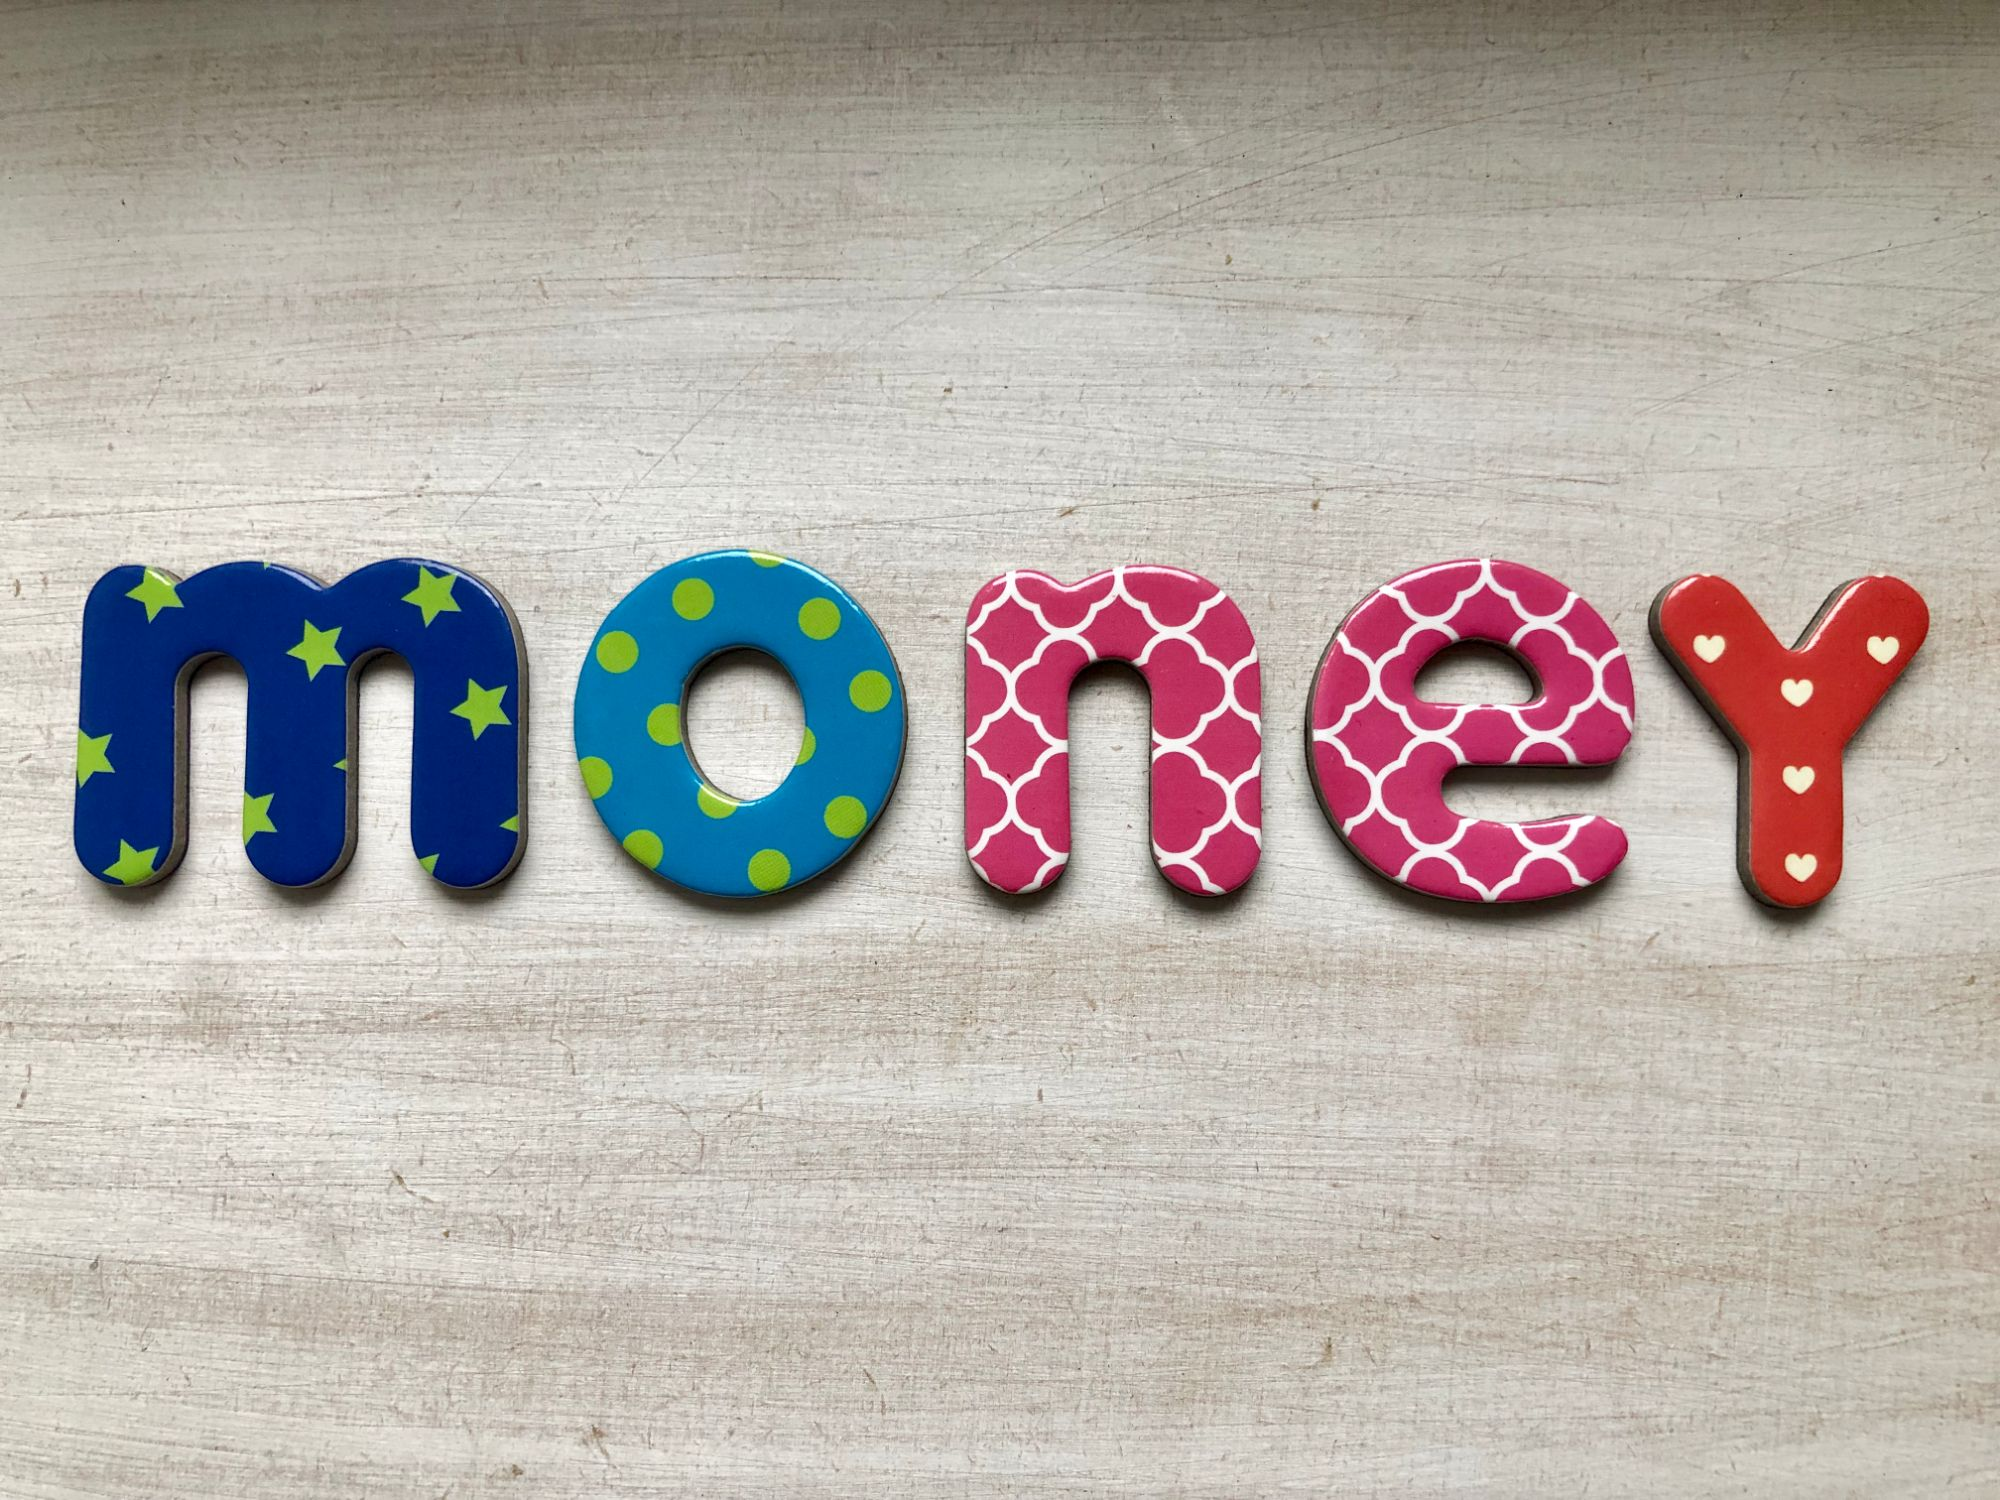 Free stock images money bloggers blog photos alphabet letters